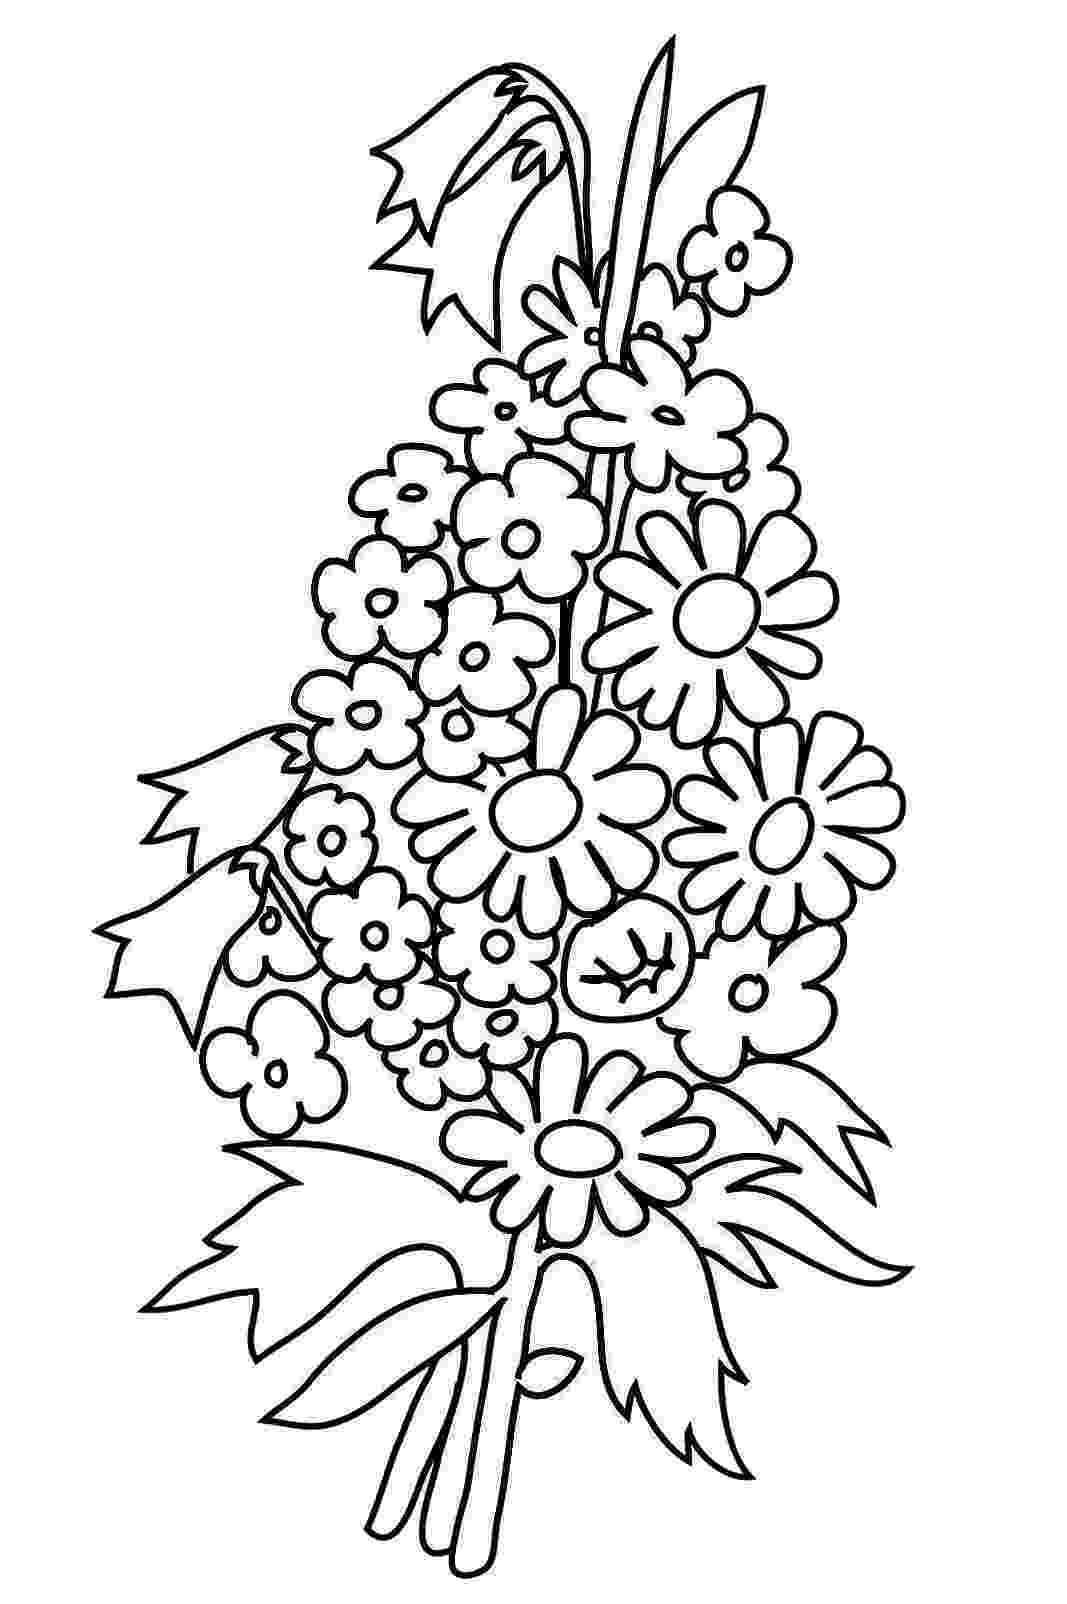 coloring pictures of bouquet of flowers bouquet coloring pages coloring of pictures of flowers bouquet